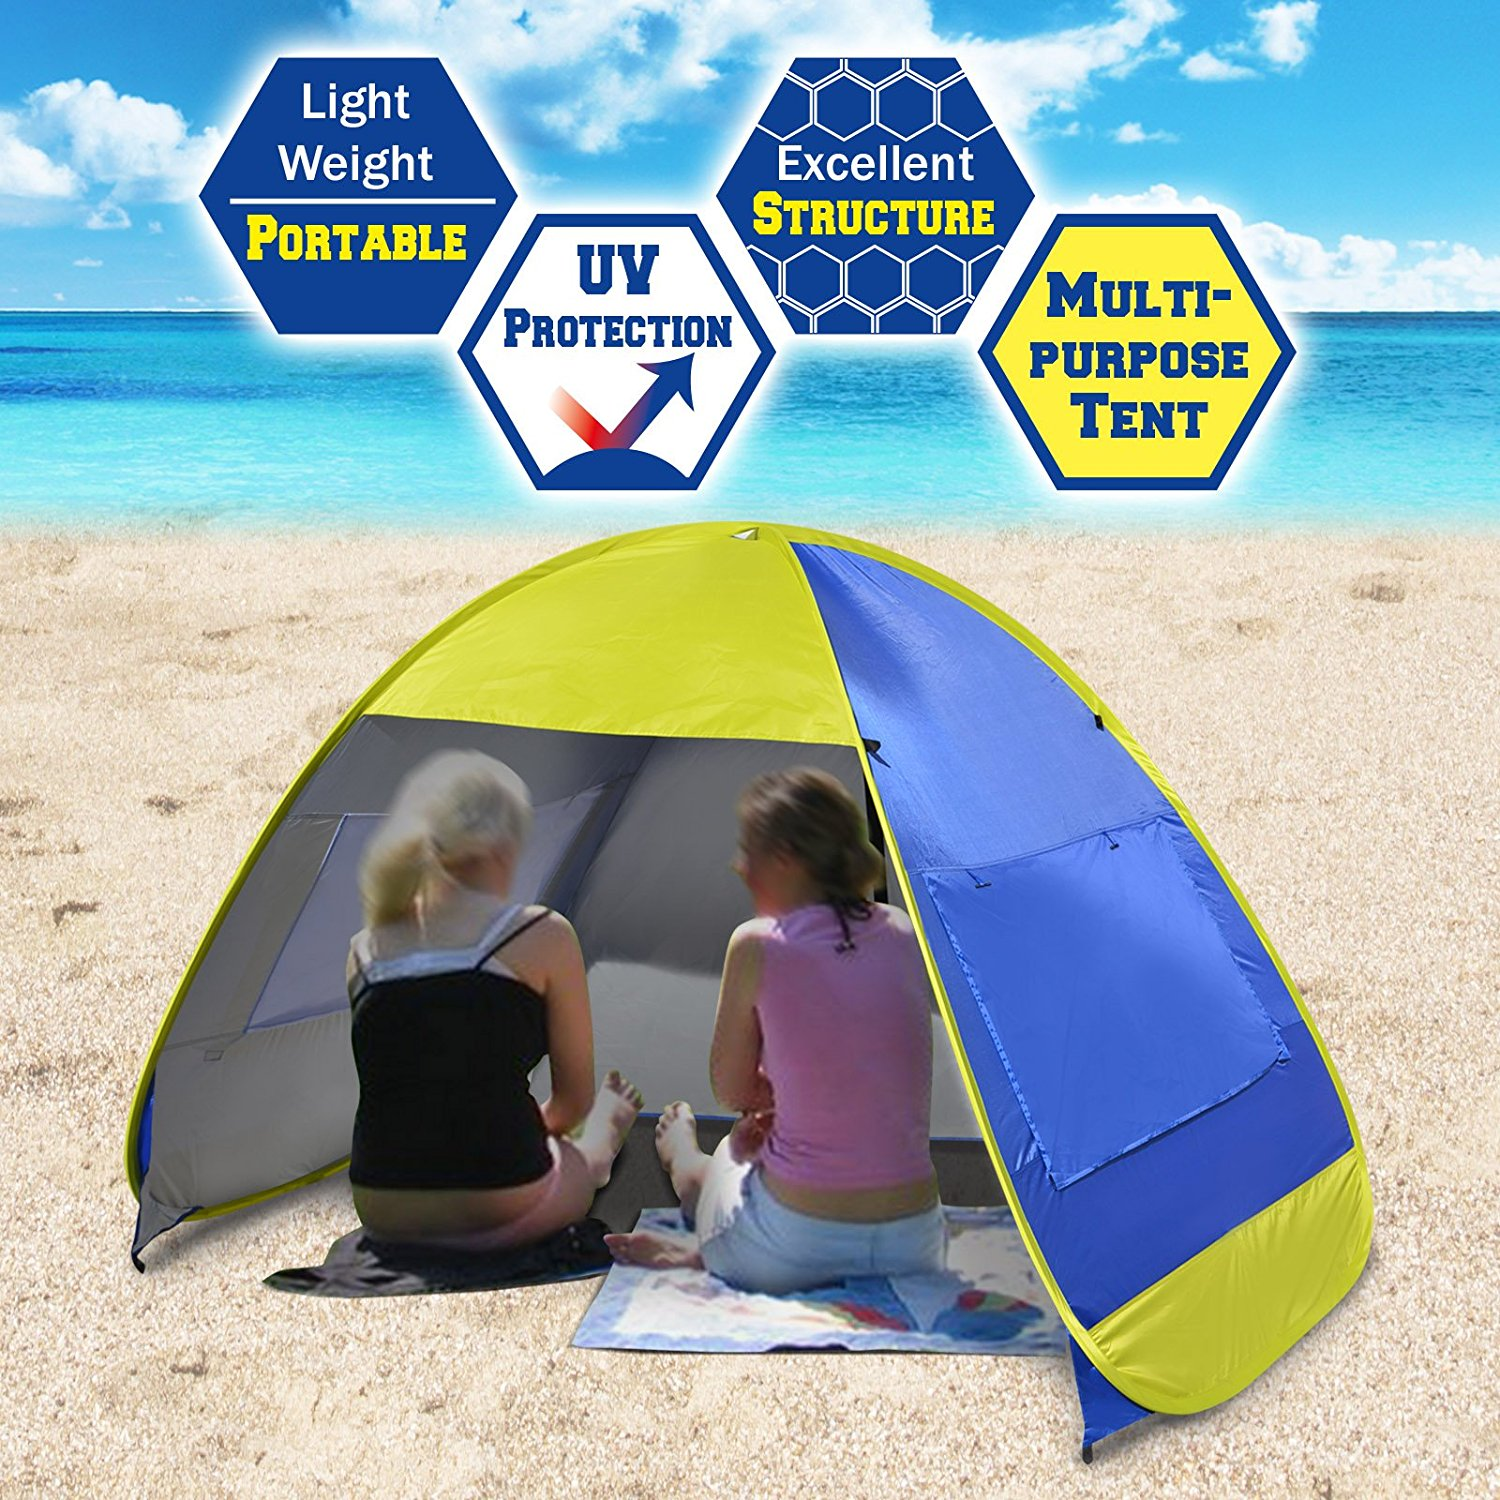 Strong Camel Instant Pop Up Beach Tent Portable Canopy Family Sports Sun Shade Shelter Outdoor Hiking  sc 1 st  Walmart & Strong Camel Instant Pop Up Beach Tent Portable Canopy Family ...